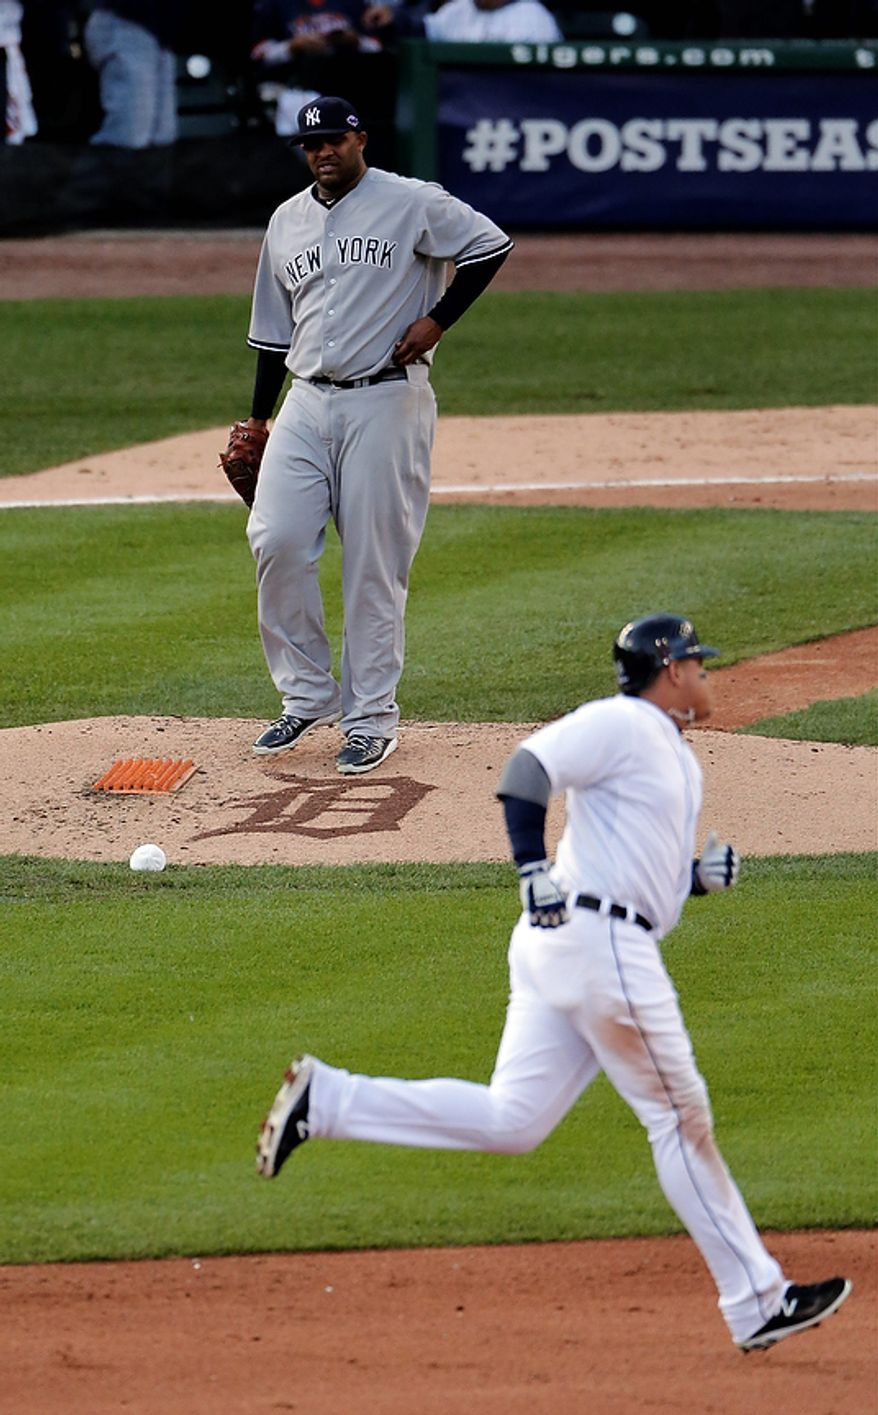 New York Yankees pitcher CC Sabathia watches after the Detroit Tigers' Miguel Cabrera hits a two-run home run in the fourth inning of Game 4 of the American League Championship Series on Oct. 18, 2012, in Detroit. (Associated Press)